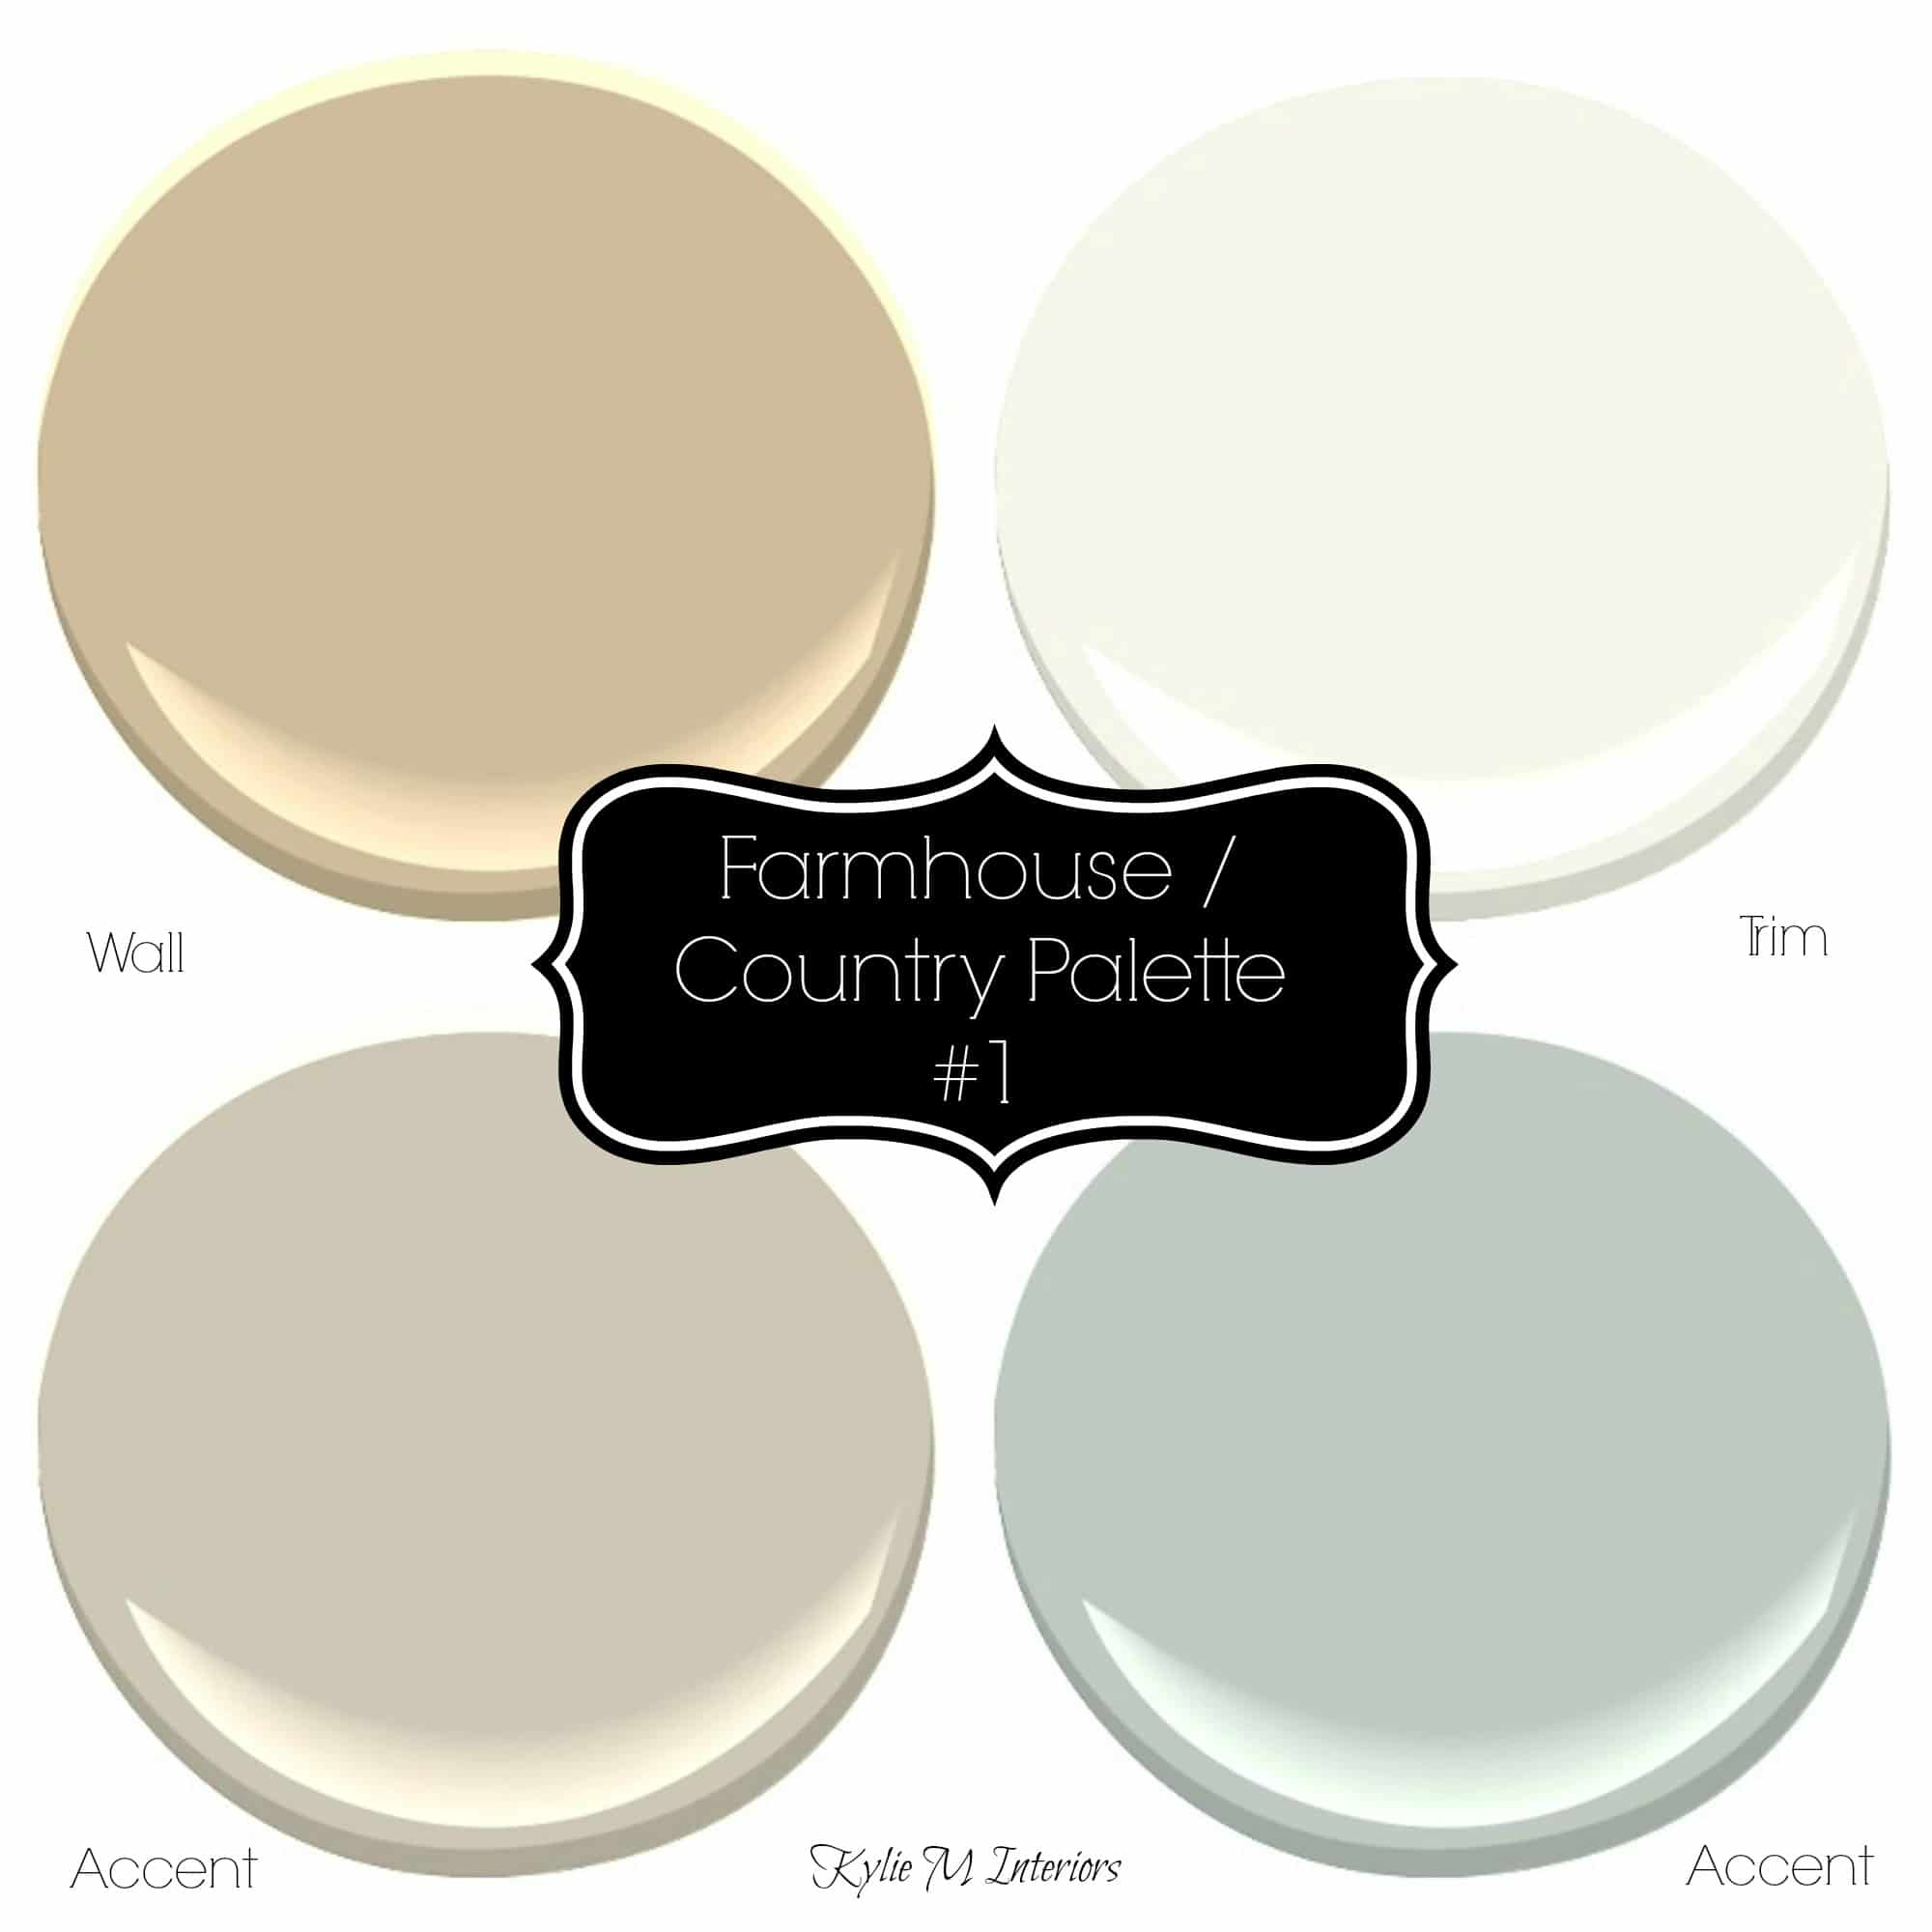 Farmhouse Color Palette Exterior Sherwin Williams 4 Neutral Farmhouse Country Paint Palettes